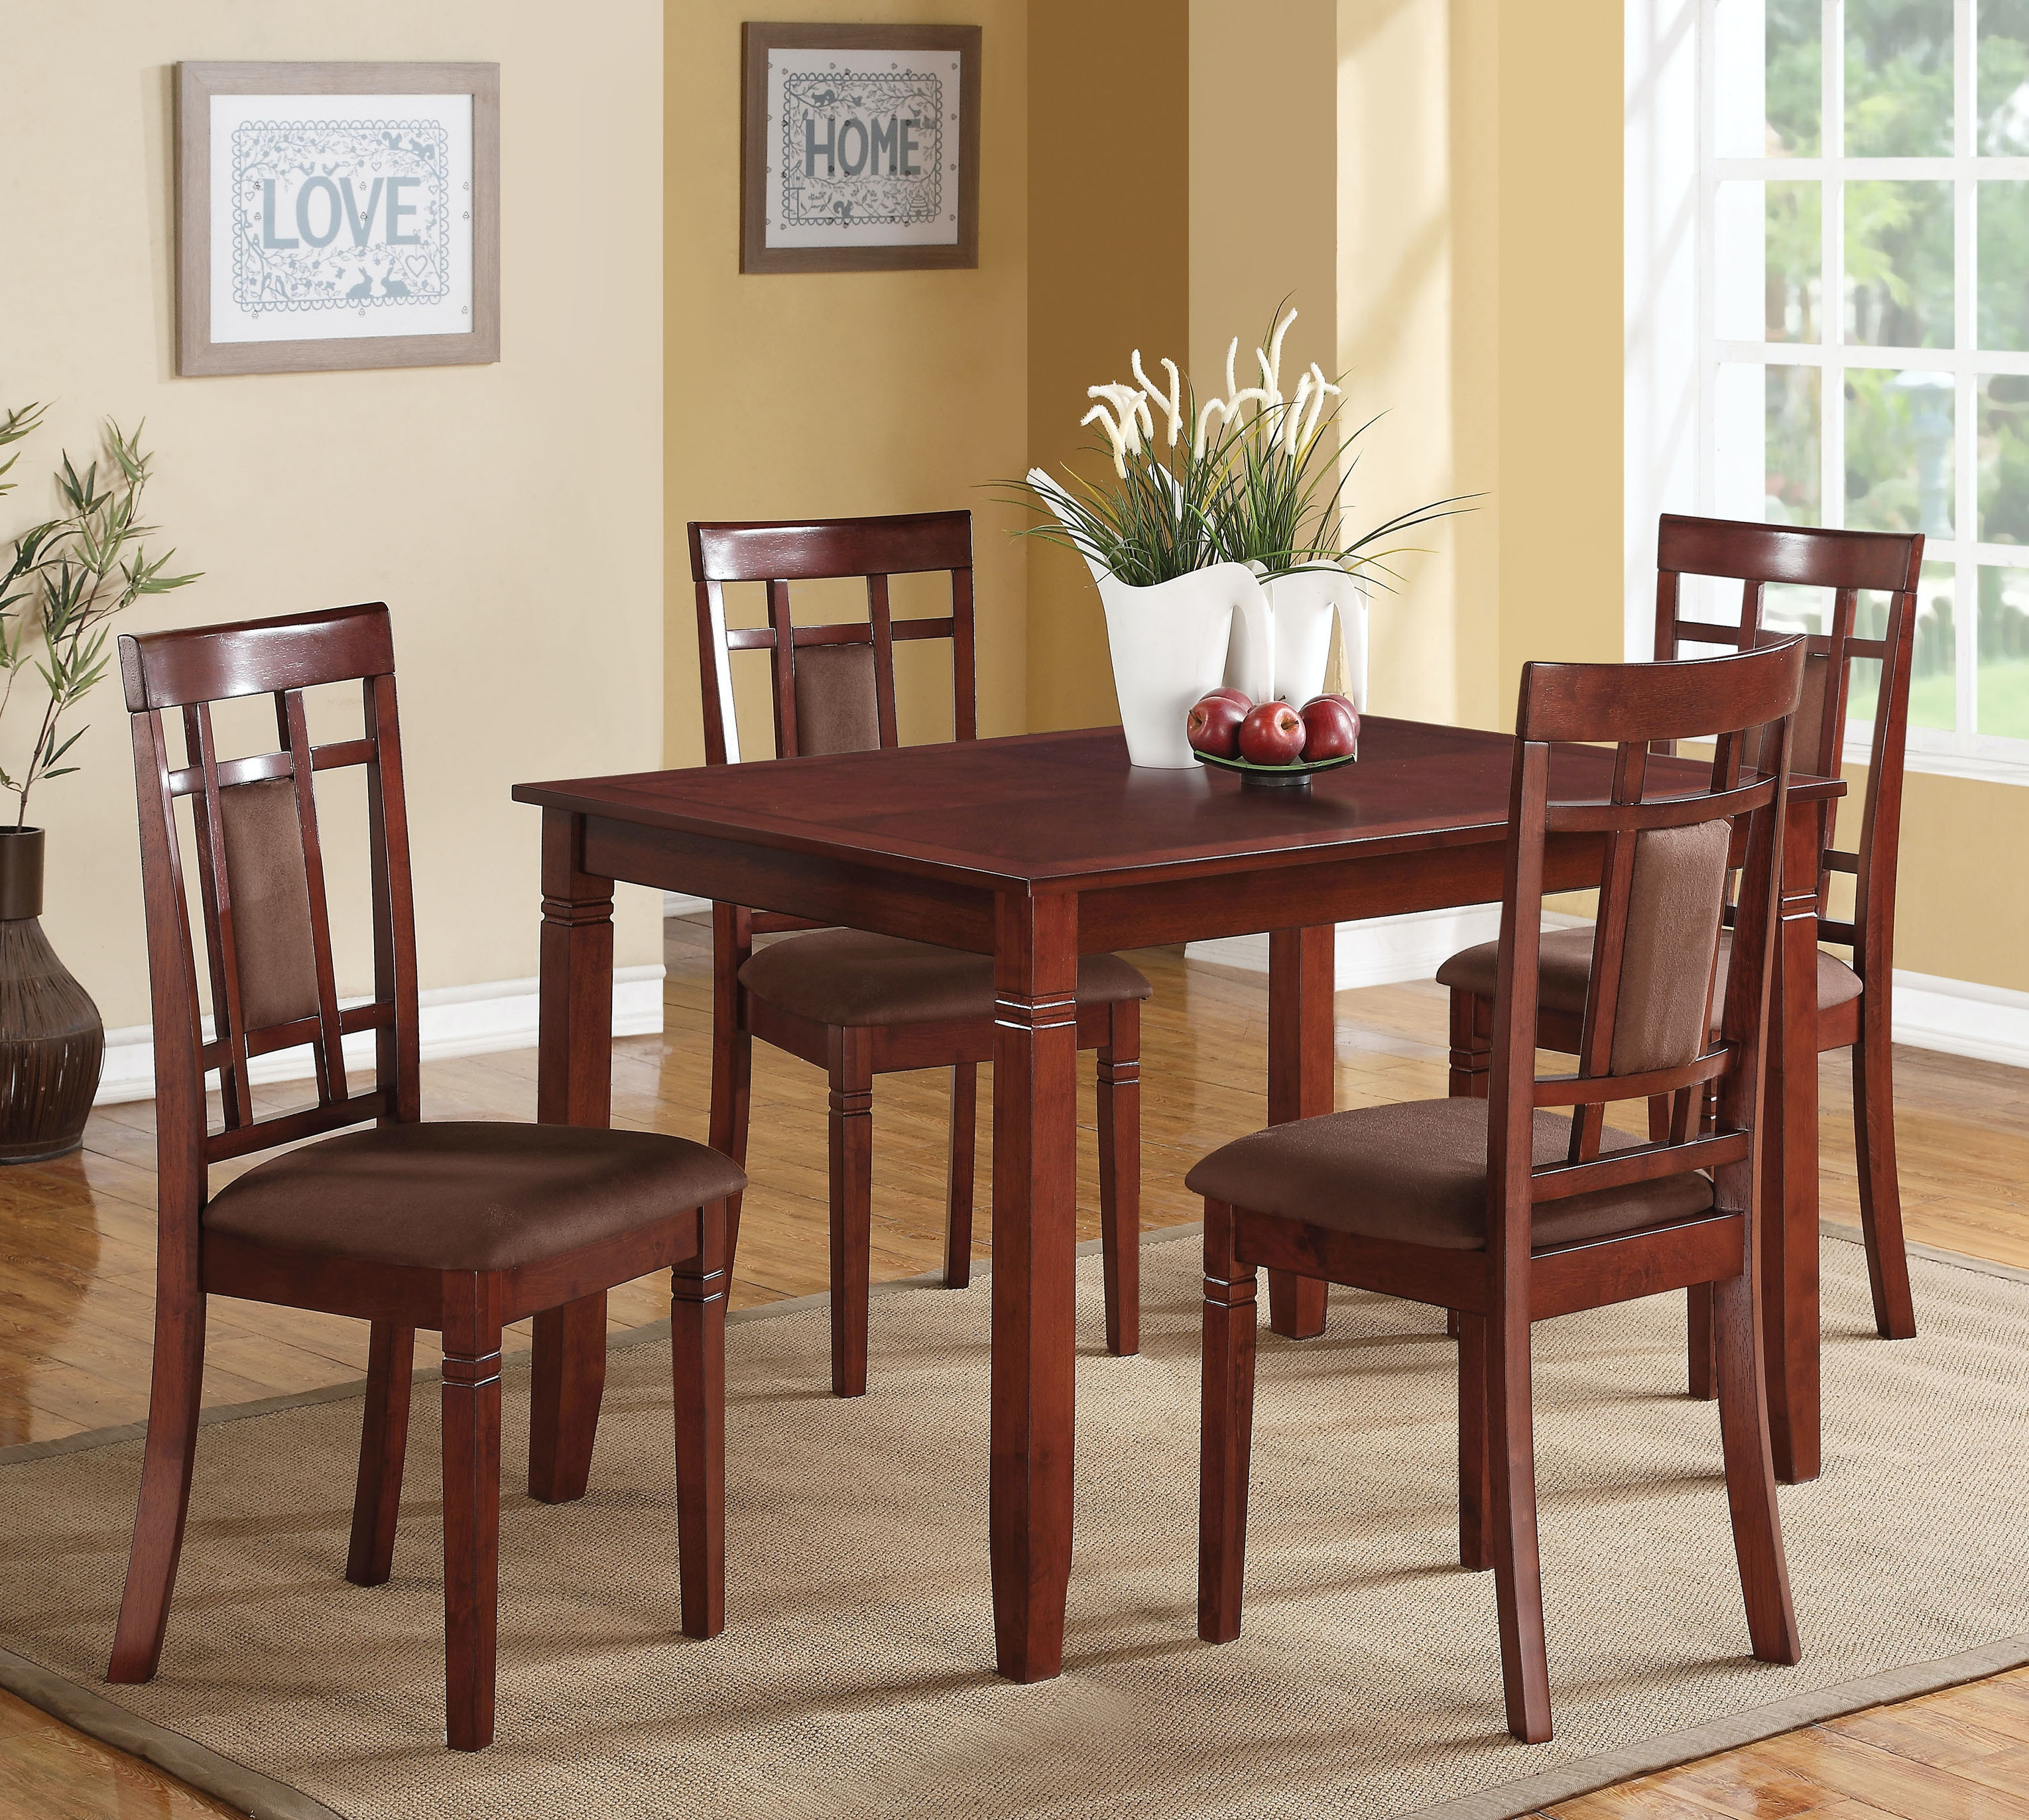 Exceptionnel Acme Furniture Dining Room Sonata 5 Piece Dining Set